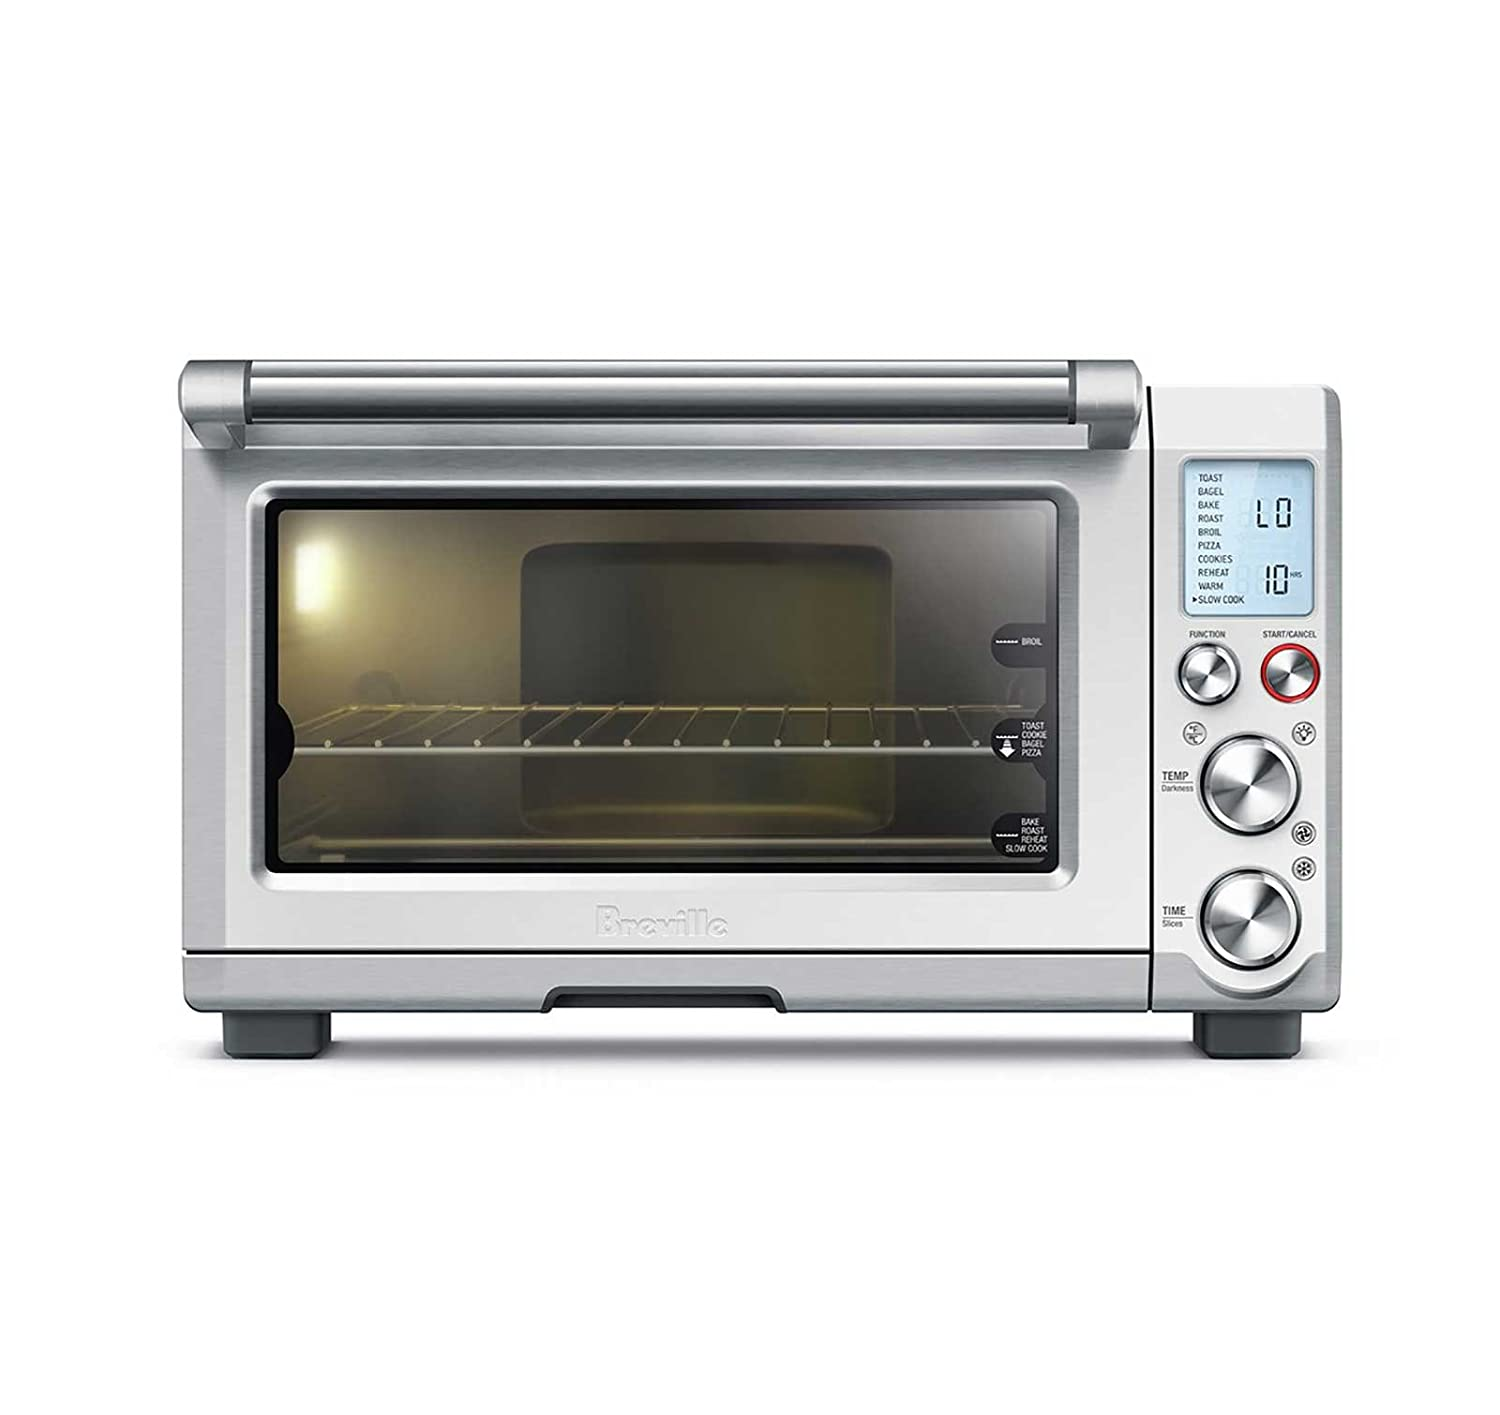 toaster res convection inflow countertop content decker oven inflowcomponent global p sale ebay for black technicalissues